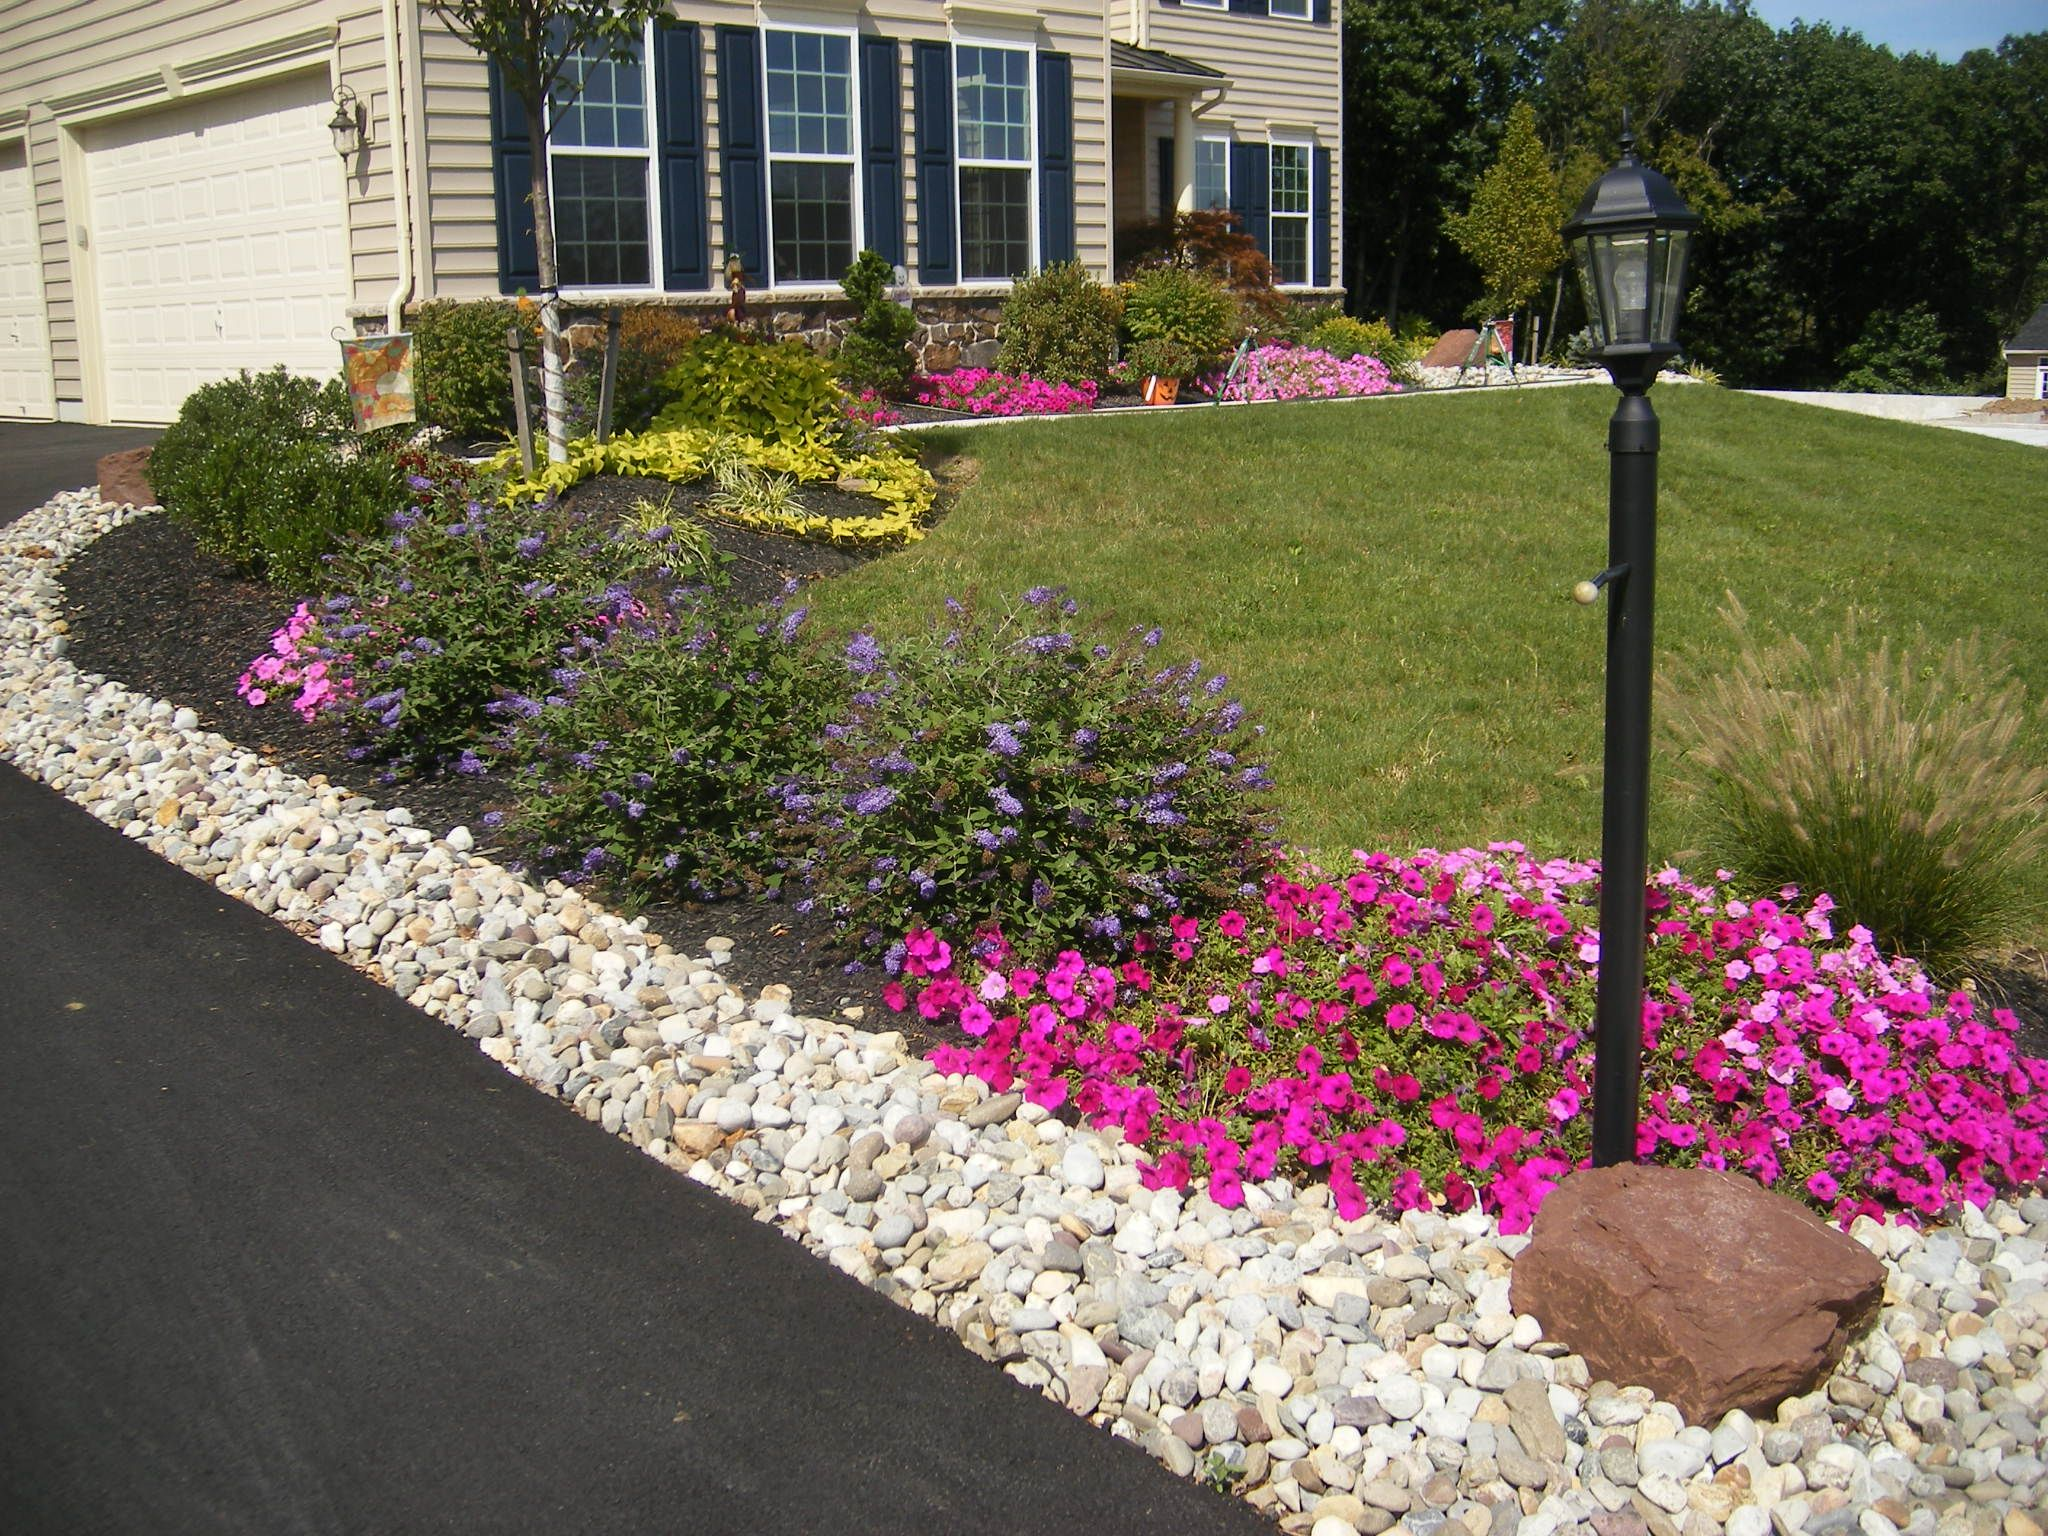 Pin by joy cunningham on landscaping pinterest driveways google front landscaping along driveway the gravel border is a great idea protecting against salt runoff contractors who miss the driveway a little etc solutioingenieria Images